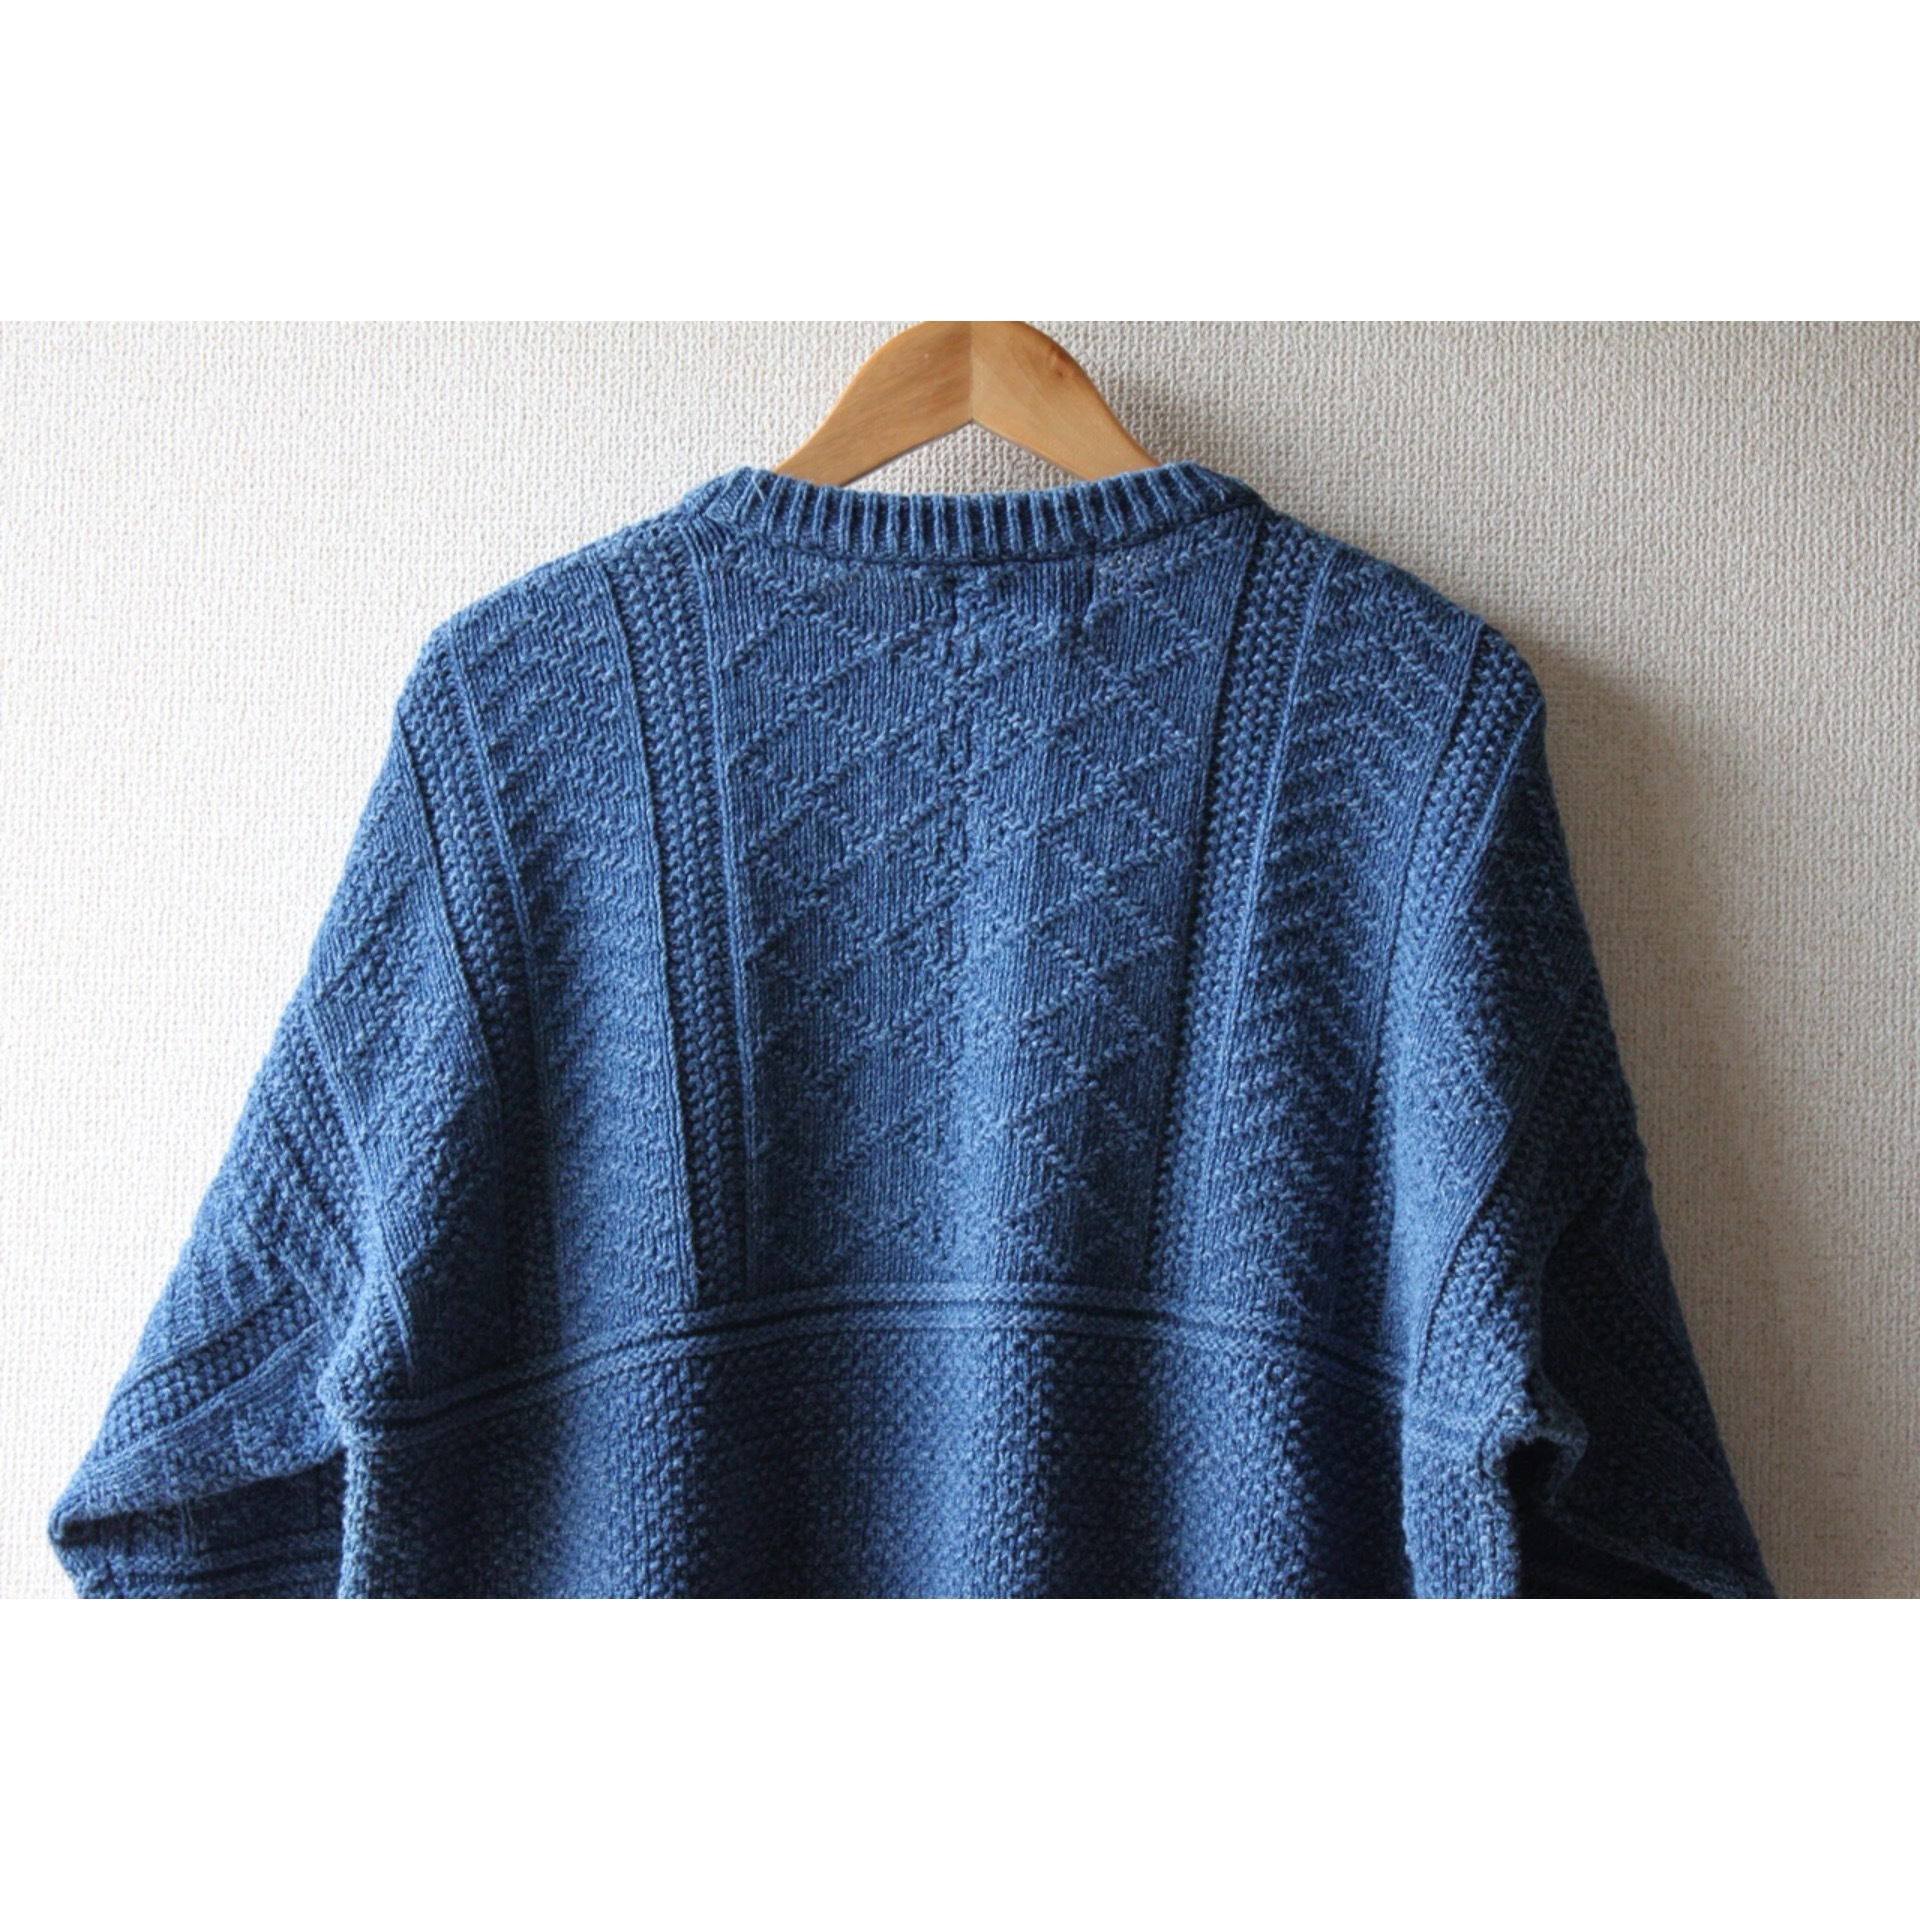 Vintage indigo cotton sweater by Eddie Bauer